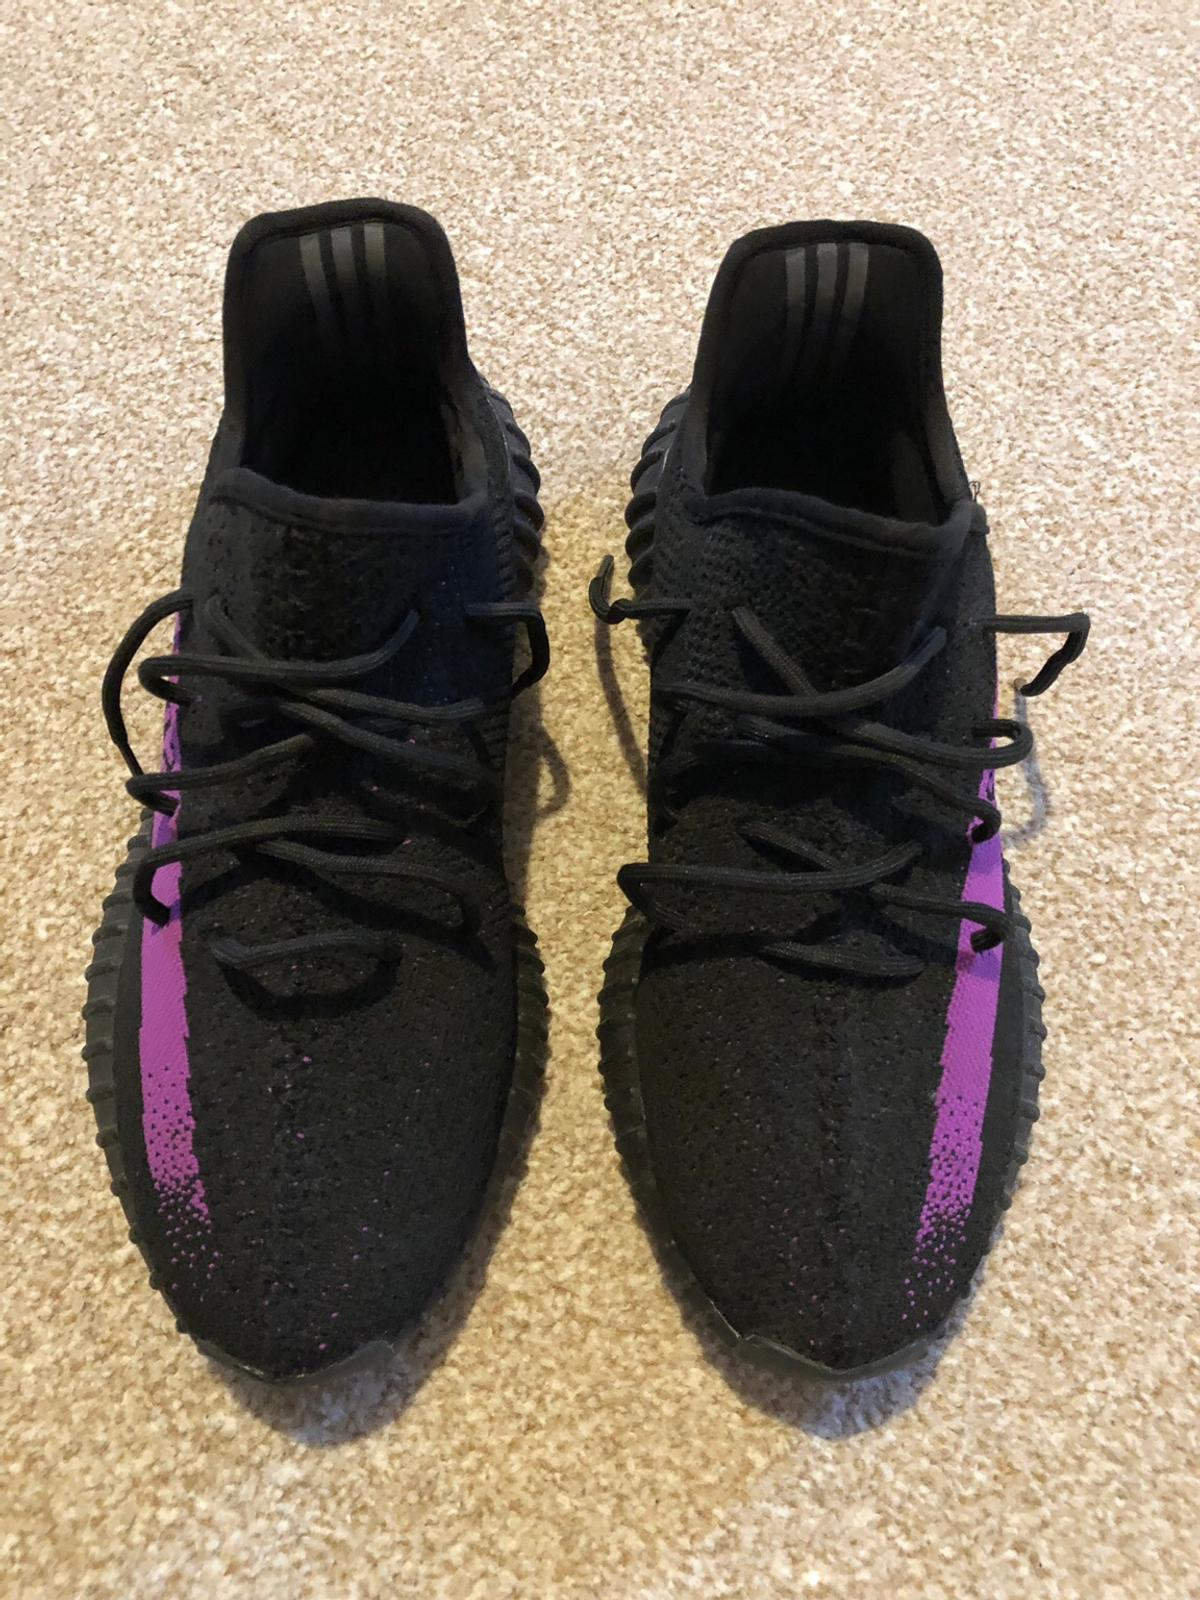 new arrival a925a 0f803 Adidas Yeezy Sply 350